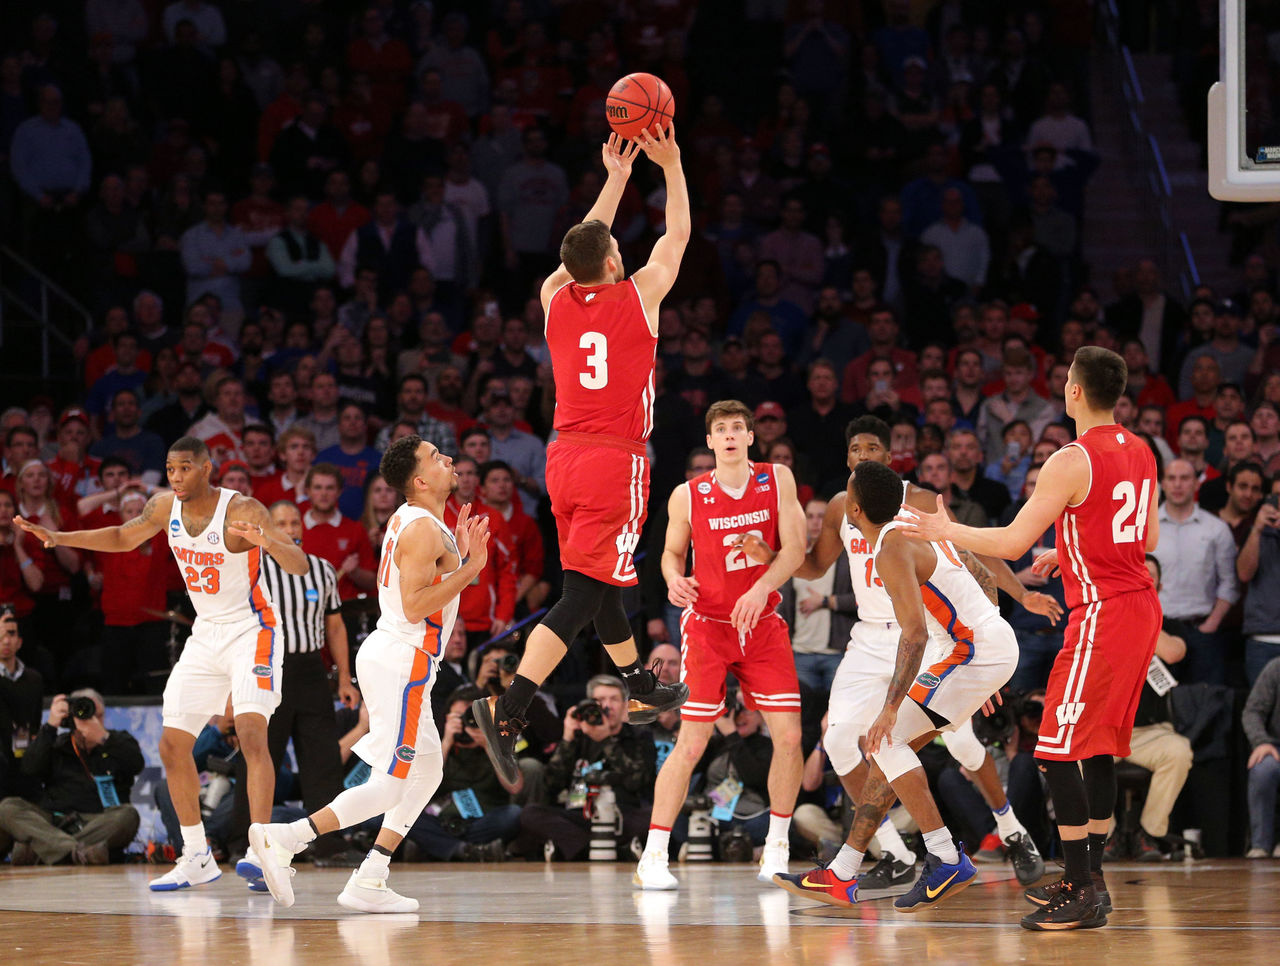 Cropped 2017 03 25t043002z 1887998428 nocid rtrmadp 3 ncaa basketball ncaa tournament east regional wisconsin vs florida  1